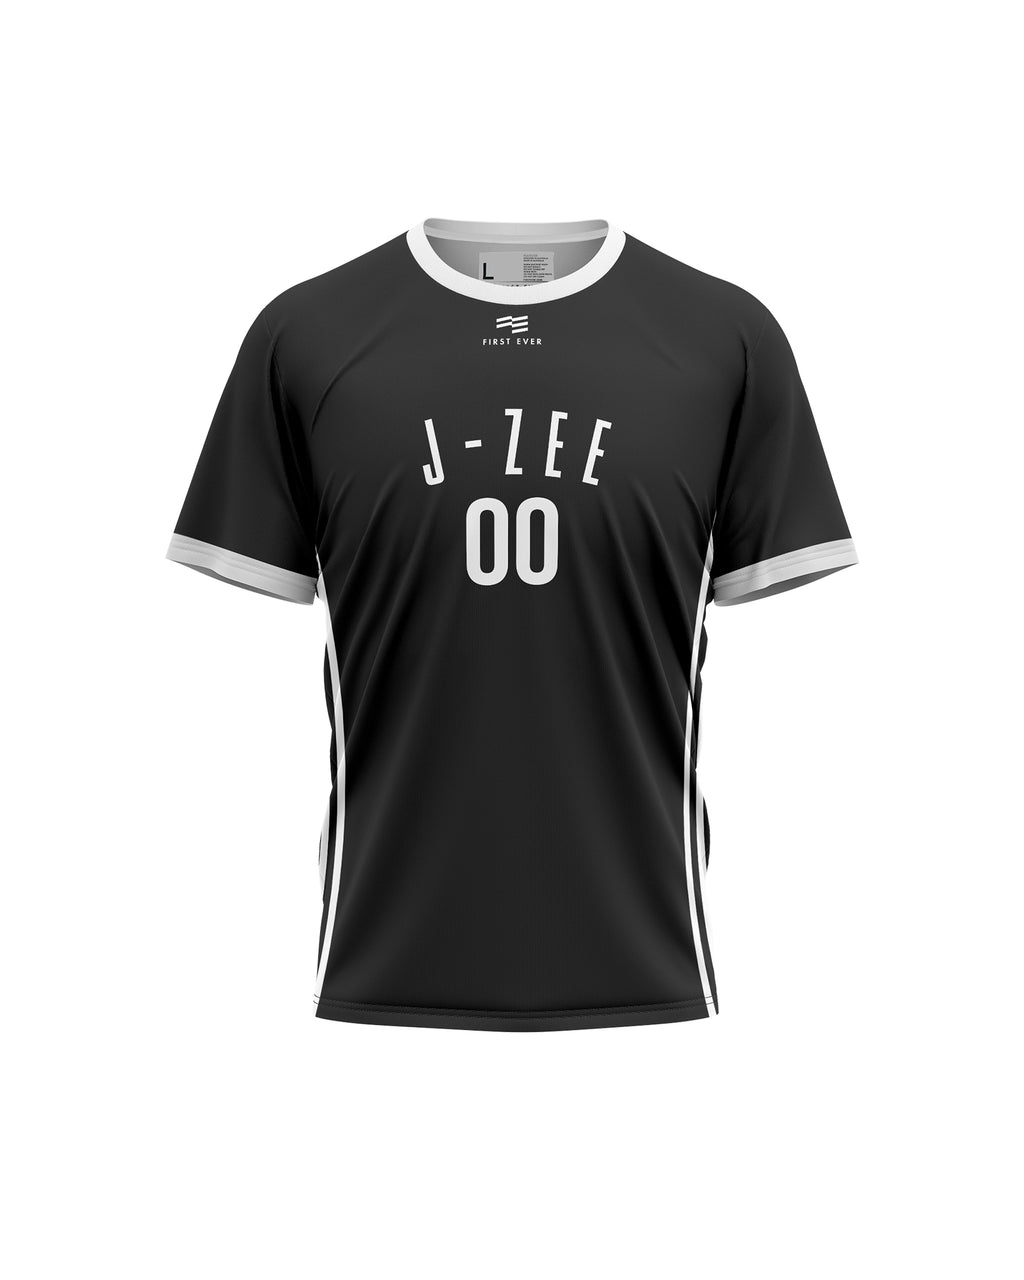 J Zee Shooting Shirt - Mens